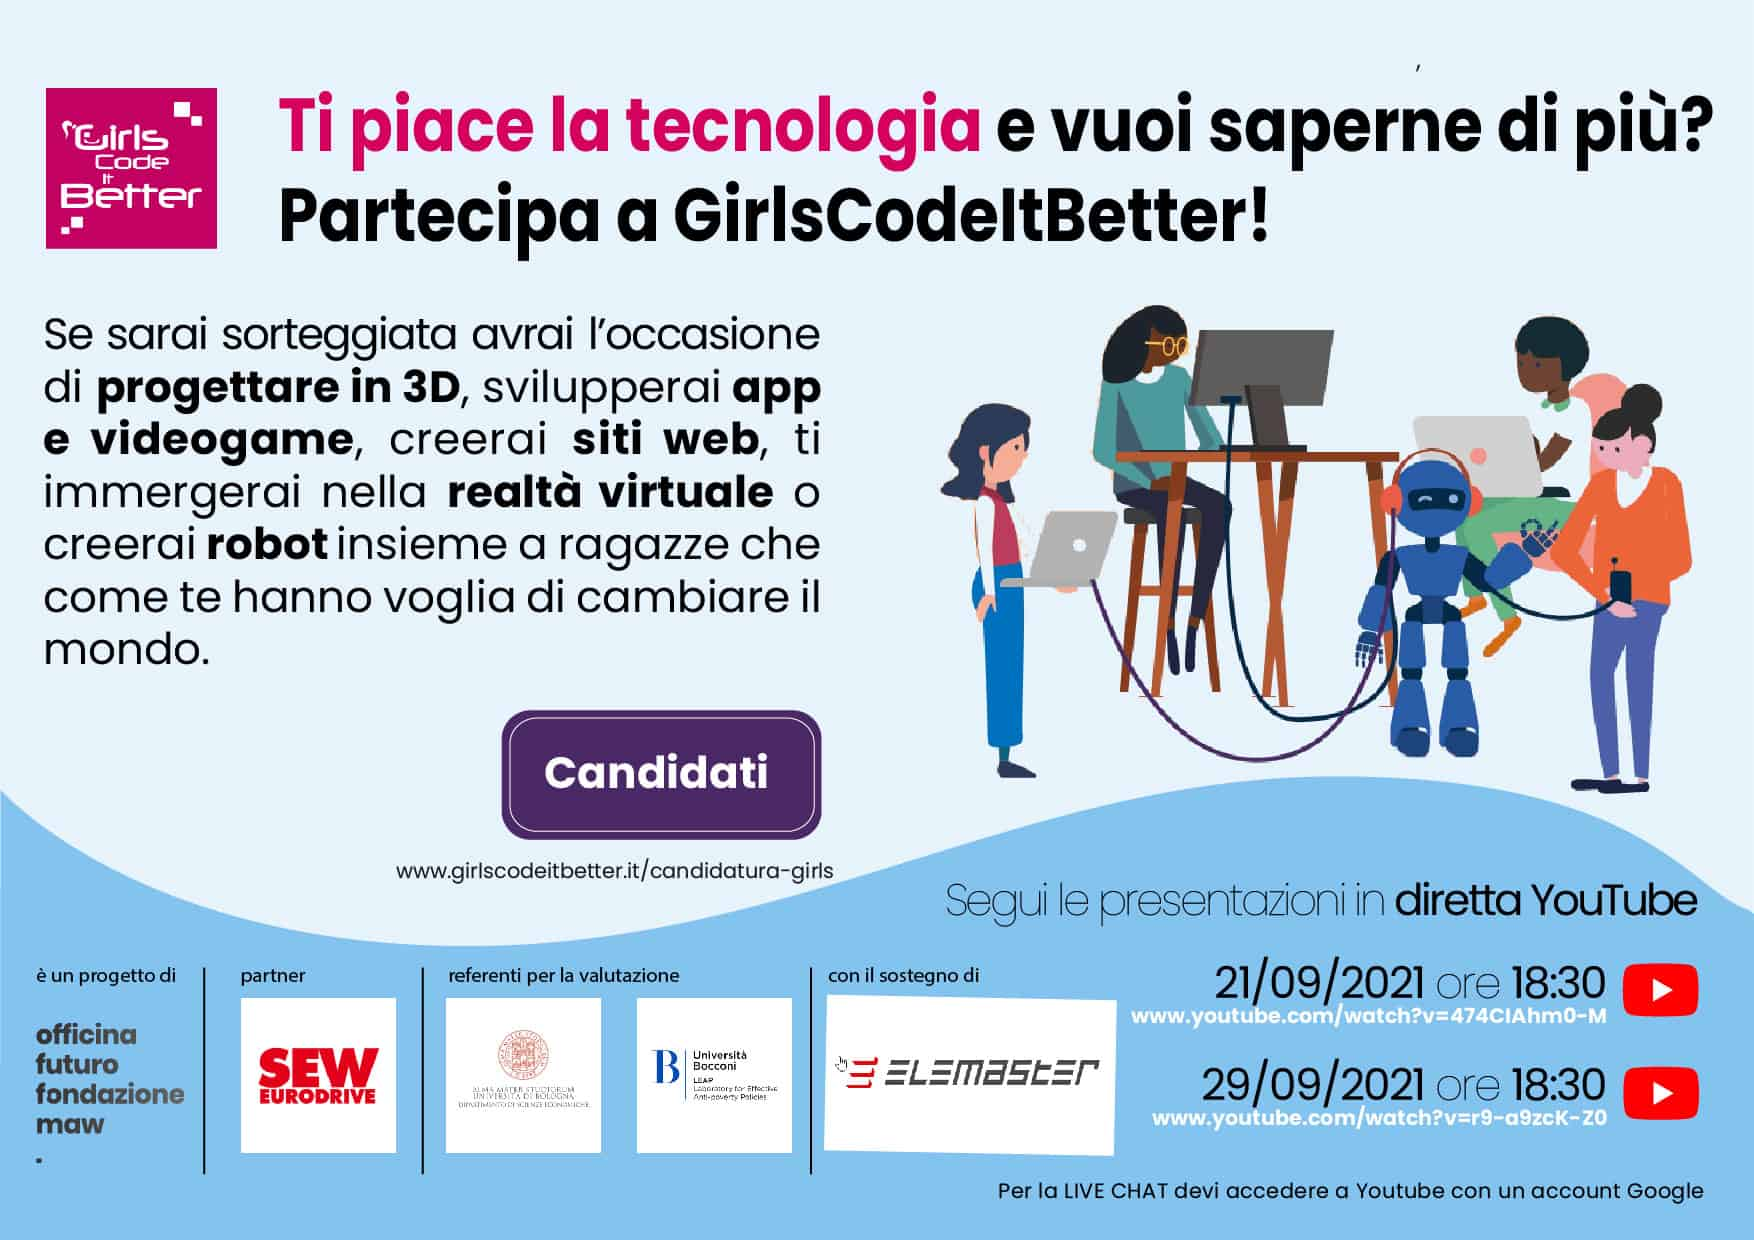 ELEMASTER AND GIRLS CODE IT BETTER